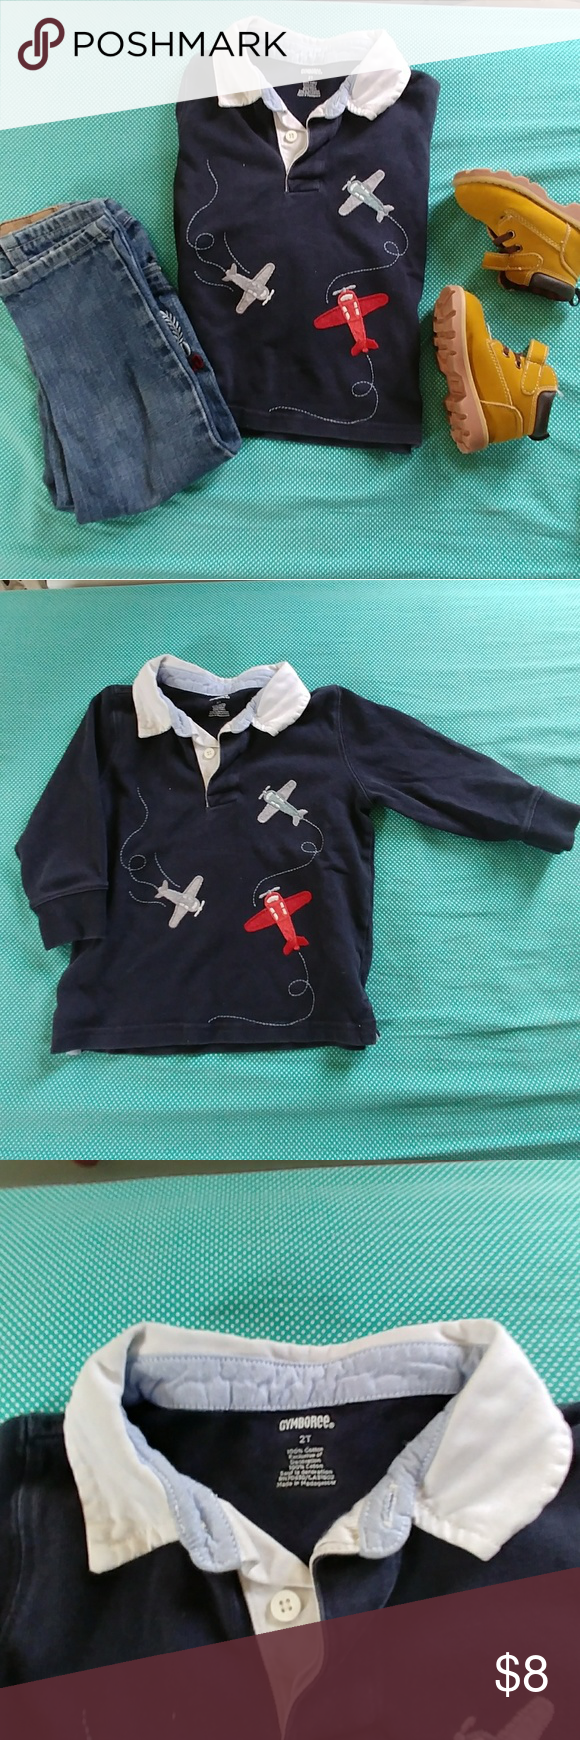 Airplane collar top Cute airplain themed top Gymboree Shirts & Tops Polos